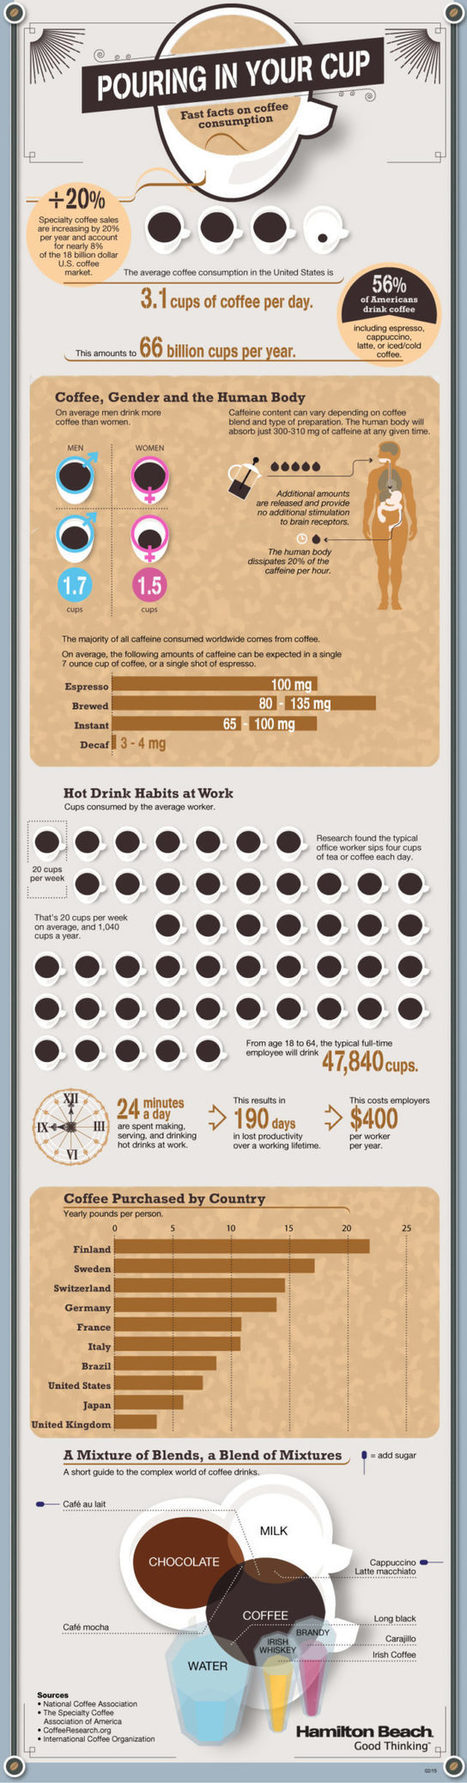 Fast Factual Coffee Drinking Statistics Infographic | The Best Infographics | Scoop.it